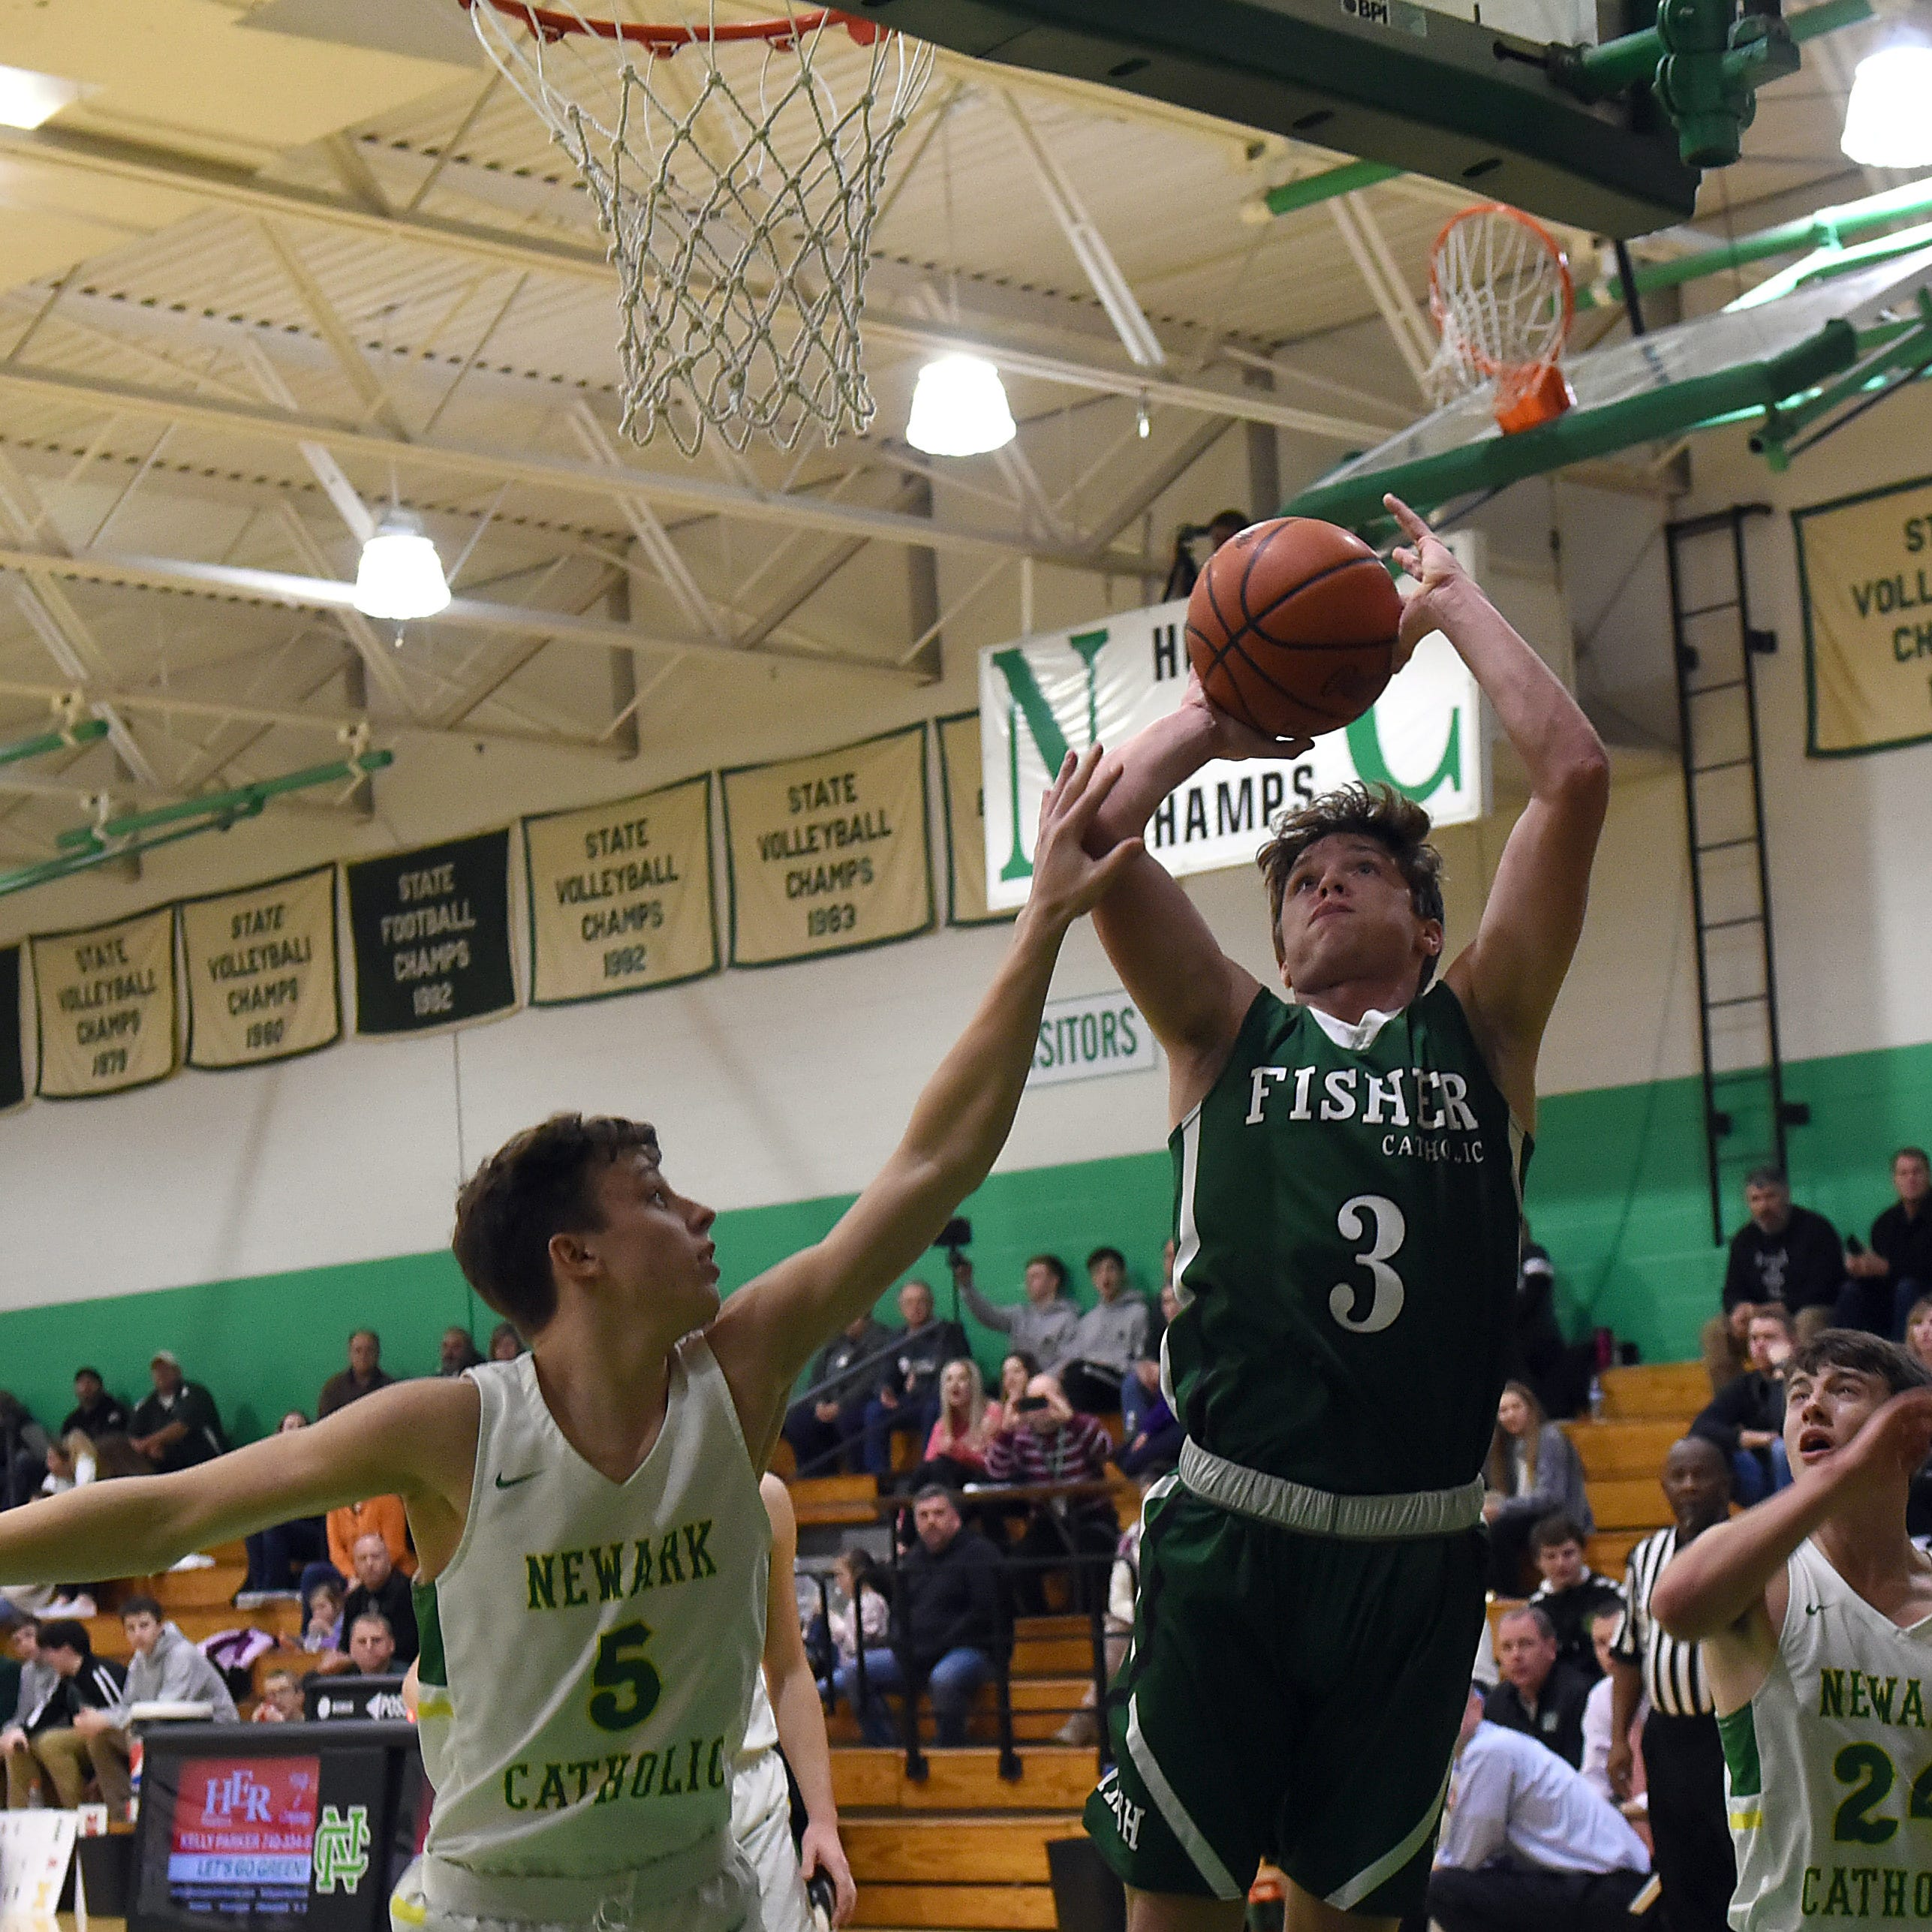 Game-winner gives Fisher Catholic rivalry win at Newark Catholic